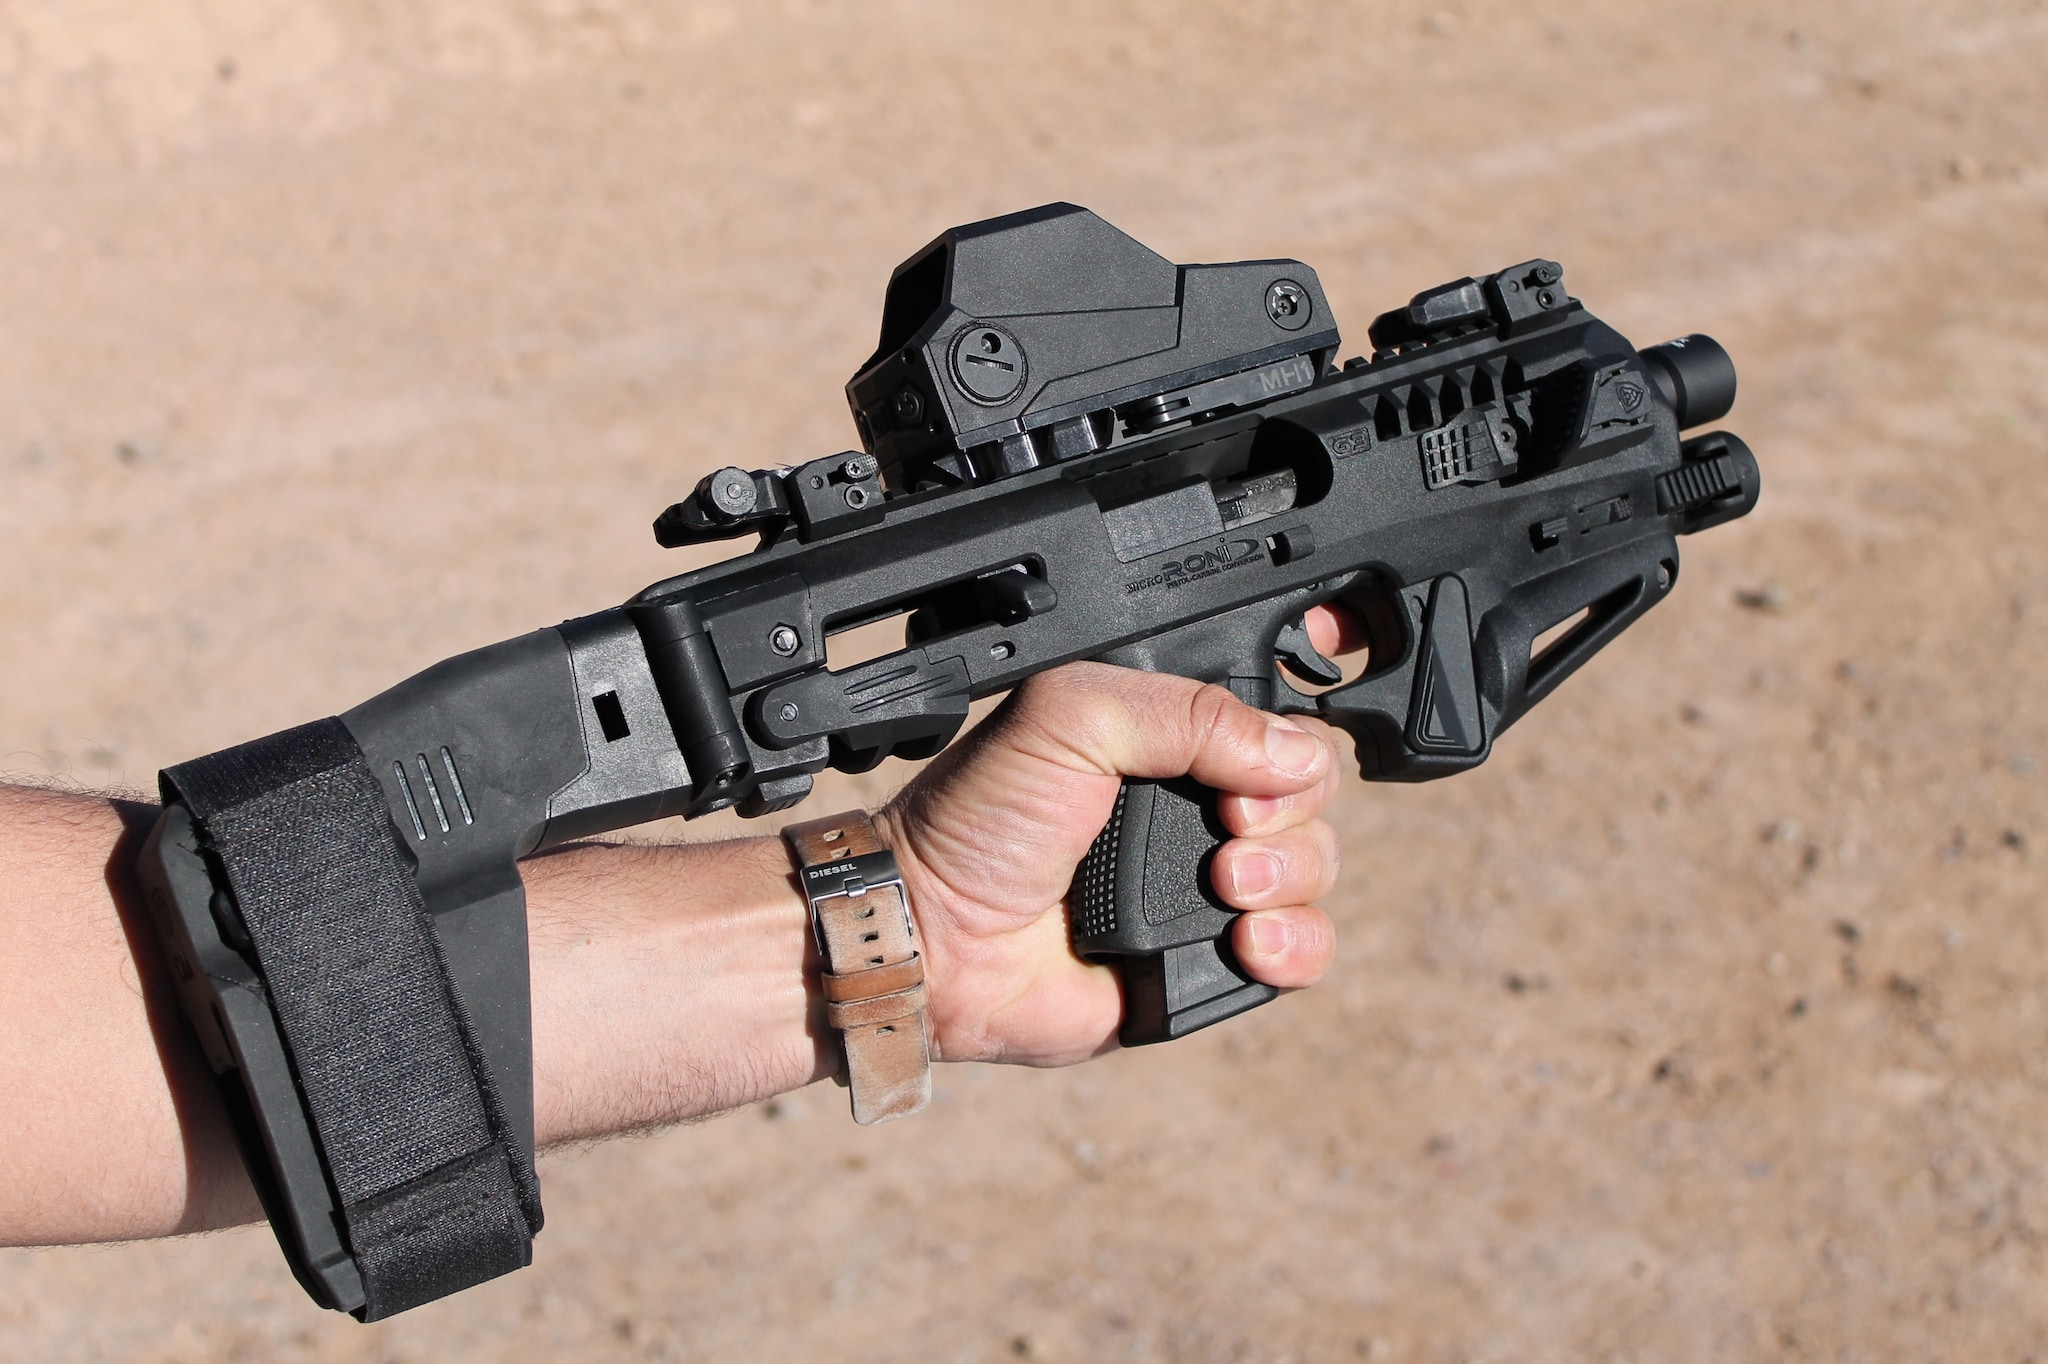 CAA's Micro Roni stabilizer kit on a Glock. $550. (Photo: Team HB)